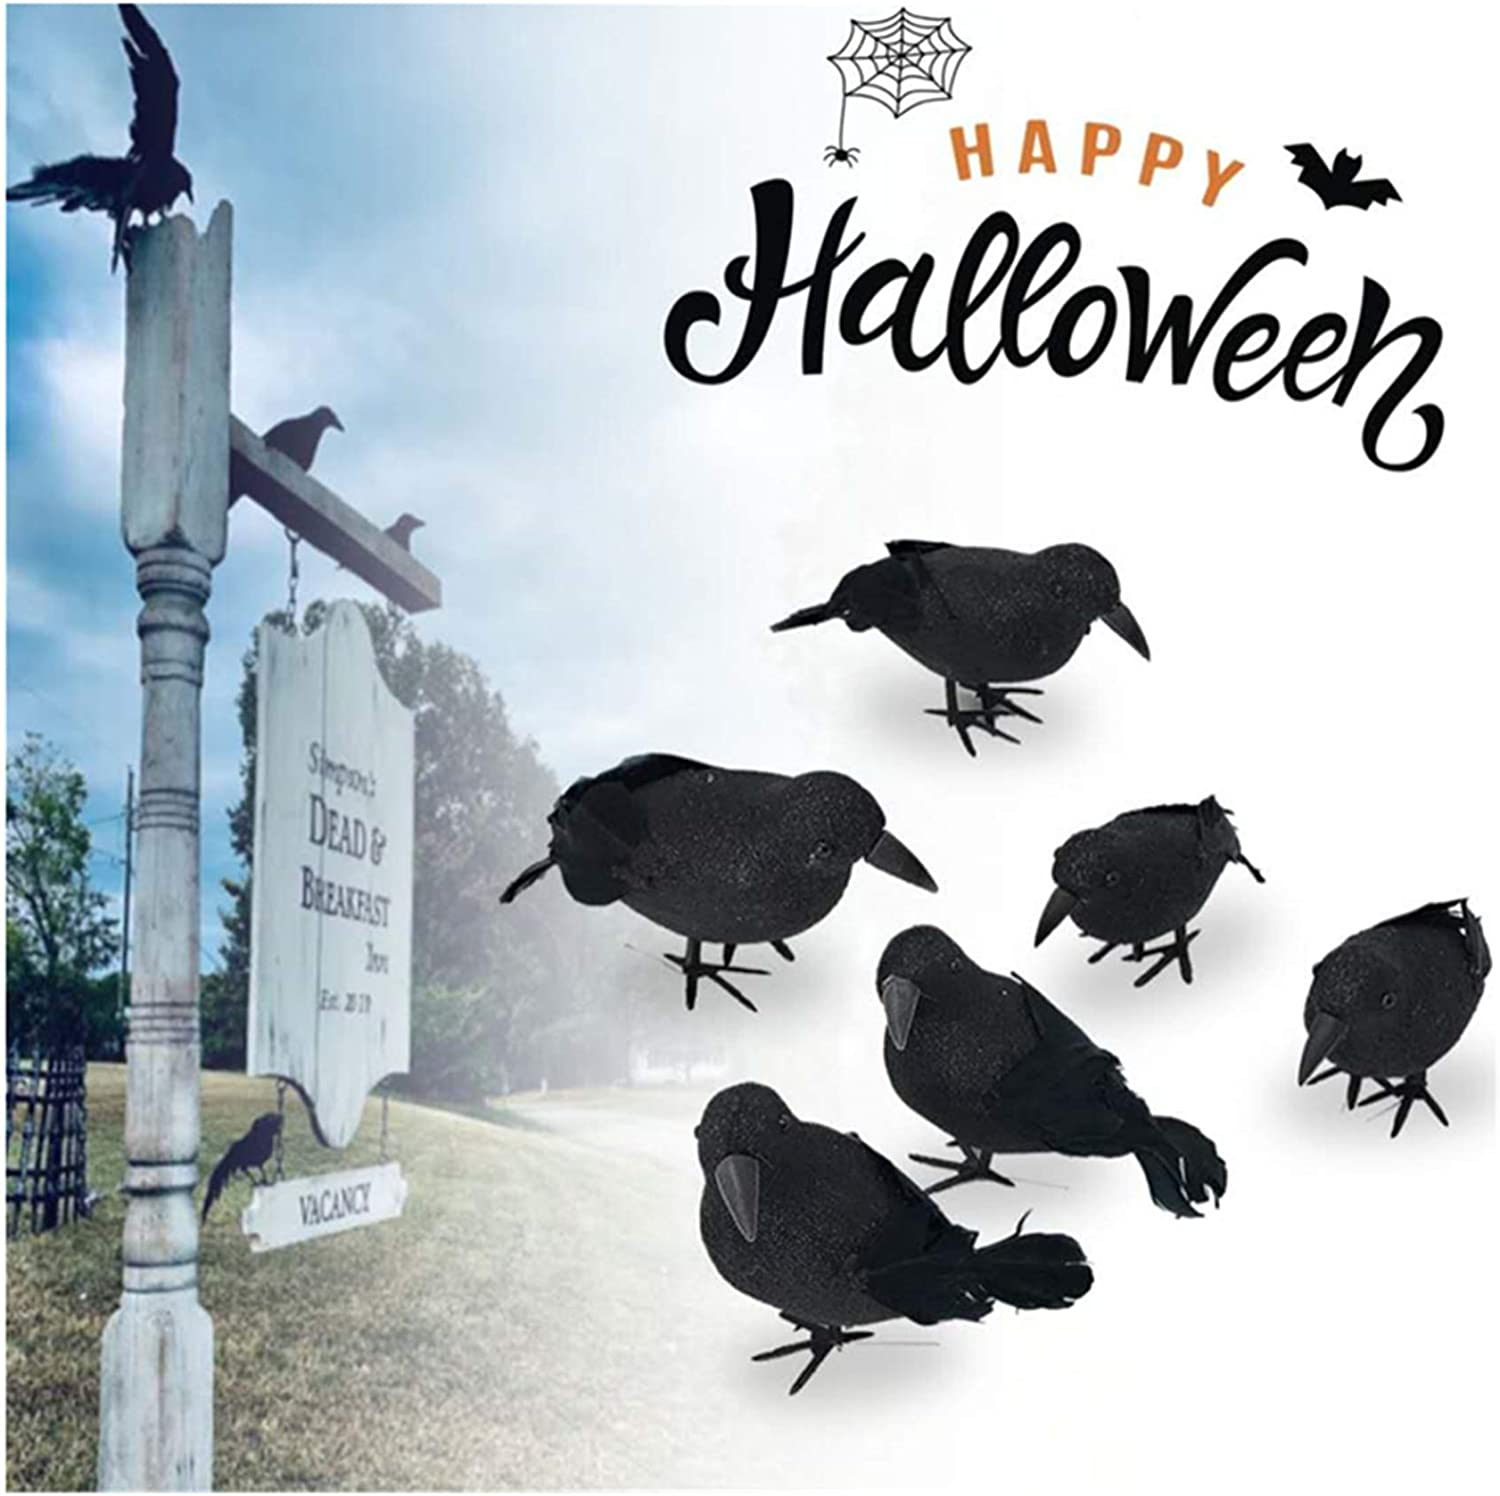 Sokiss Halloween Decorations Crows Realistic Feathered Halloween Crows and Ravens Decor Artificial Black Birds Prop for Outdoor Indoor Halloween Holiday Party Decor